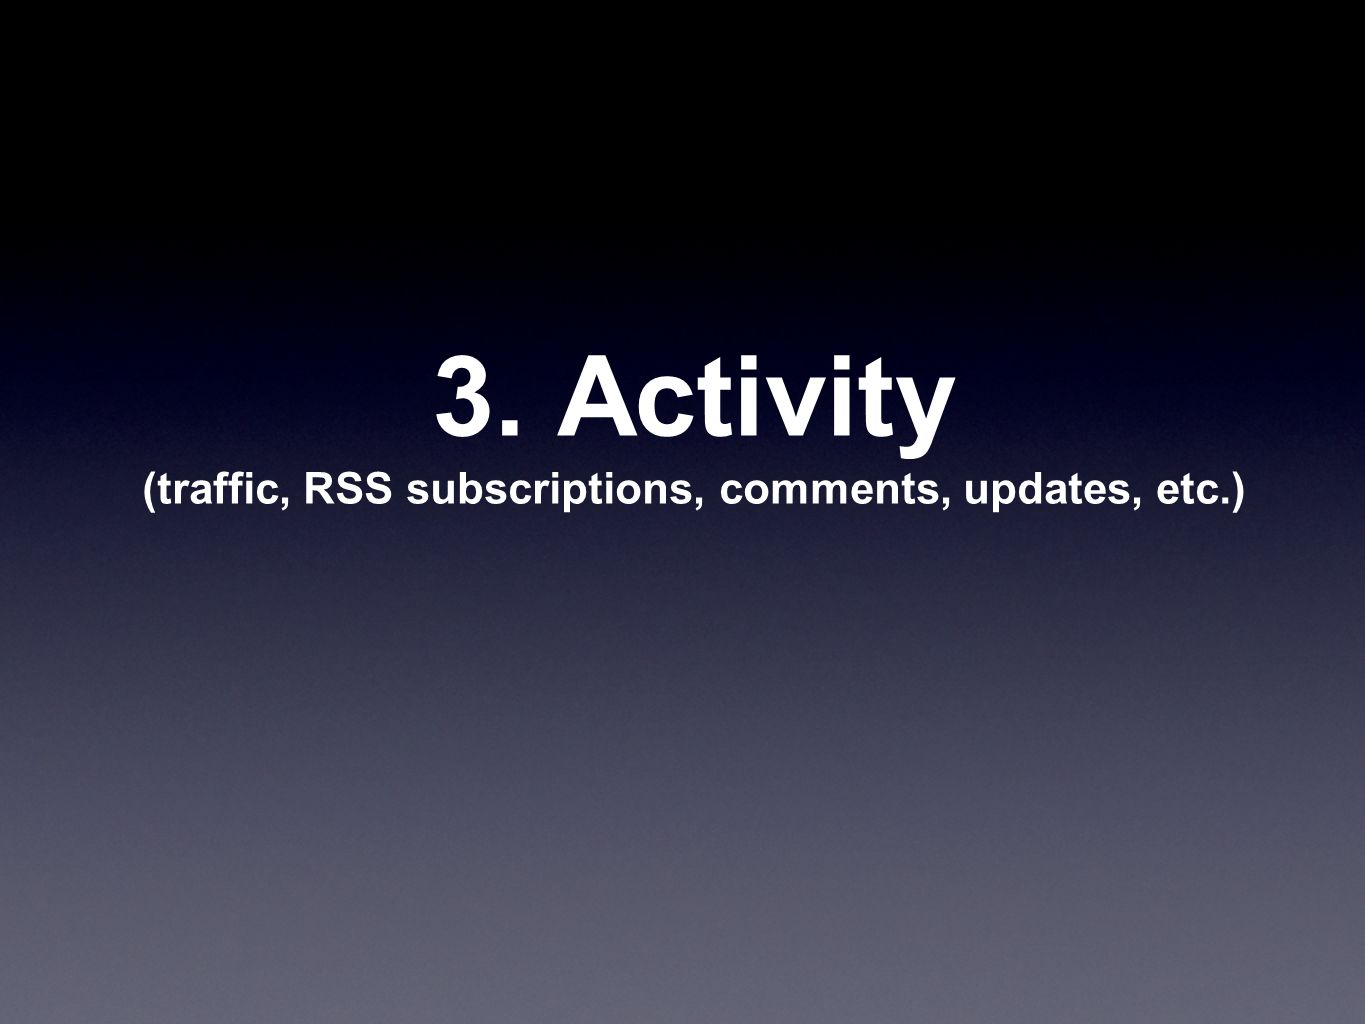 3. Activity (traffic, RSS subscriptions, comments, updates, etc.)